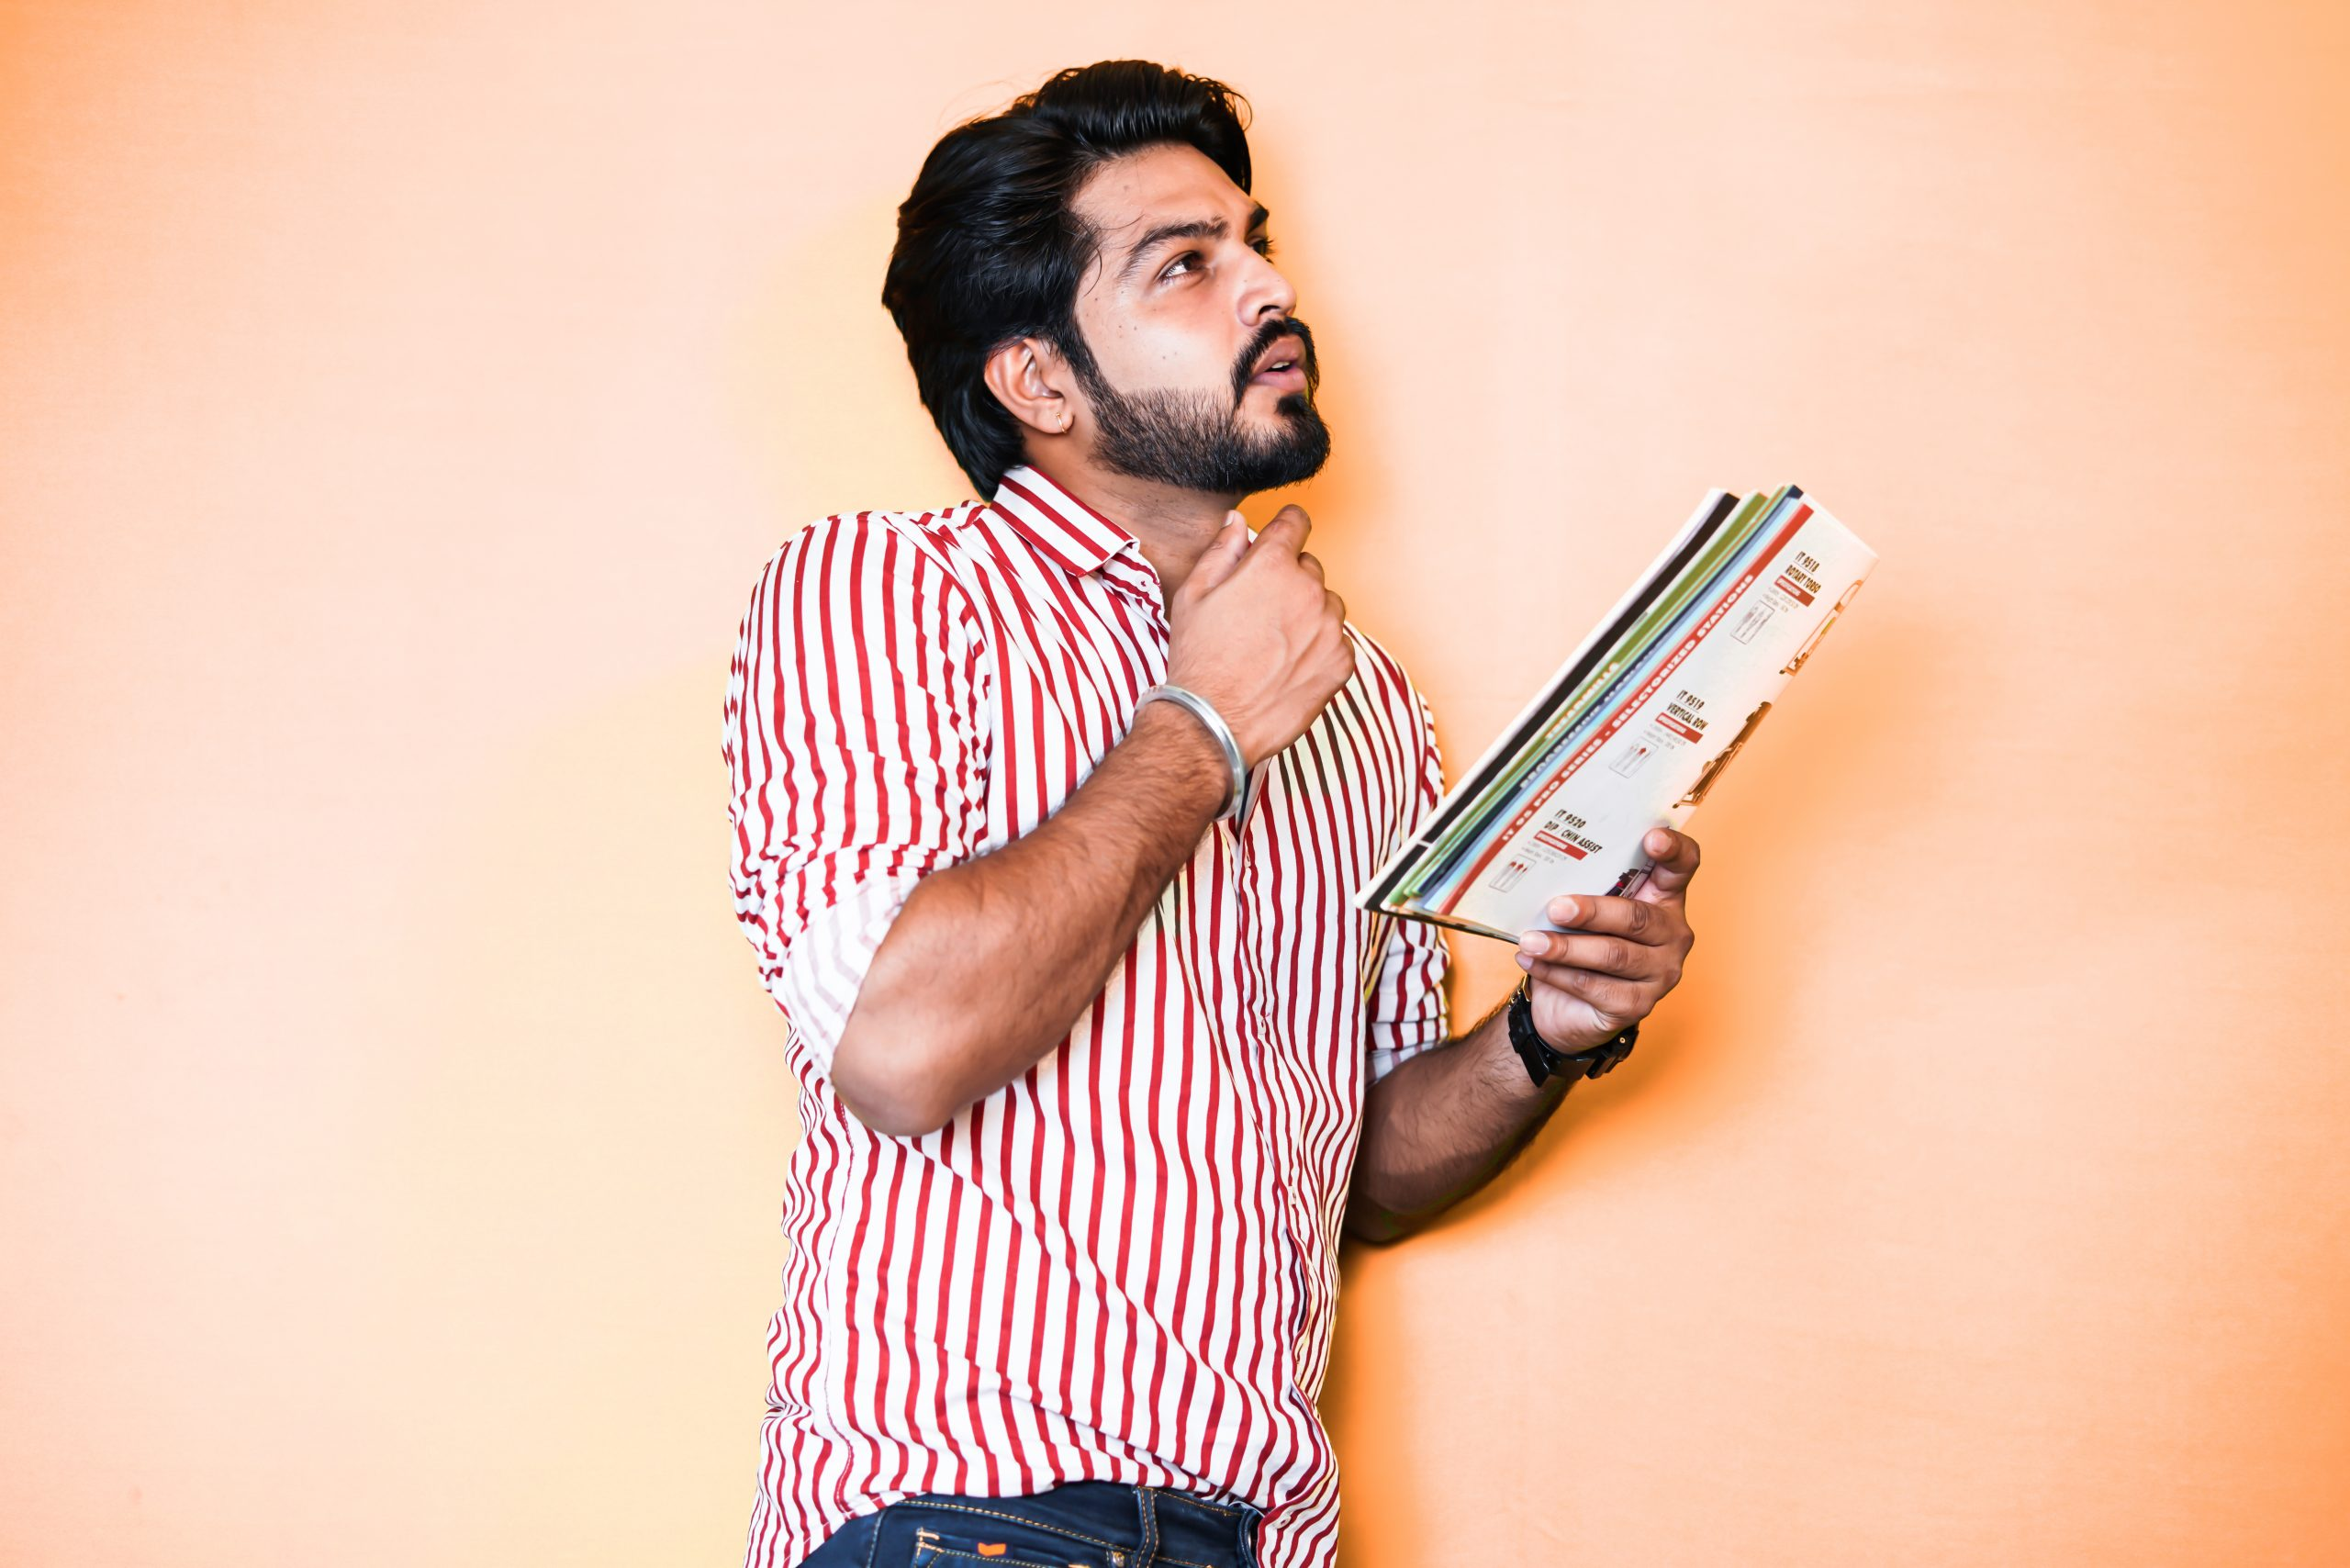 Man thinking while holding a Book